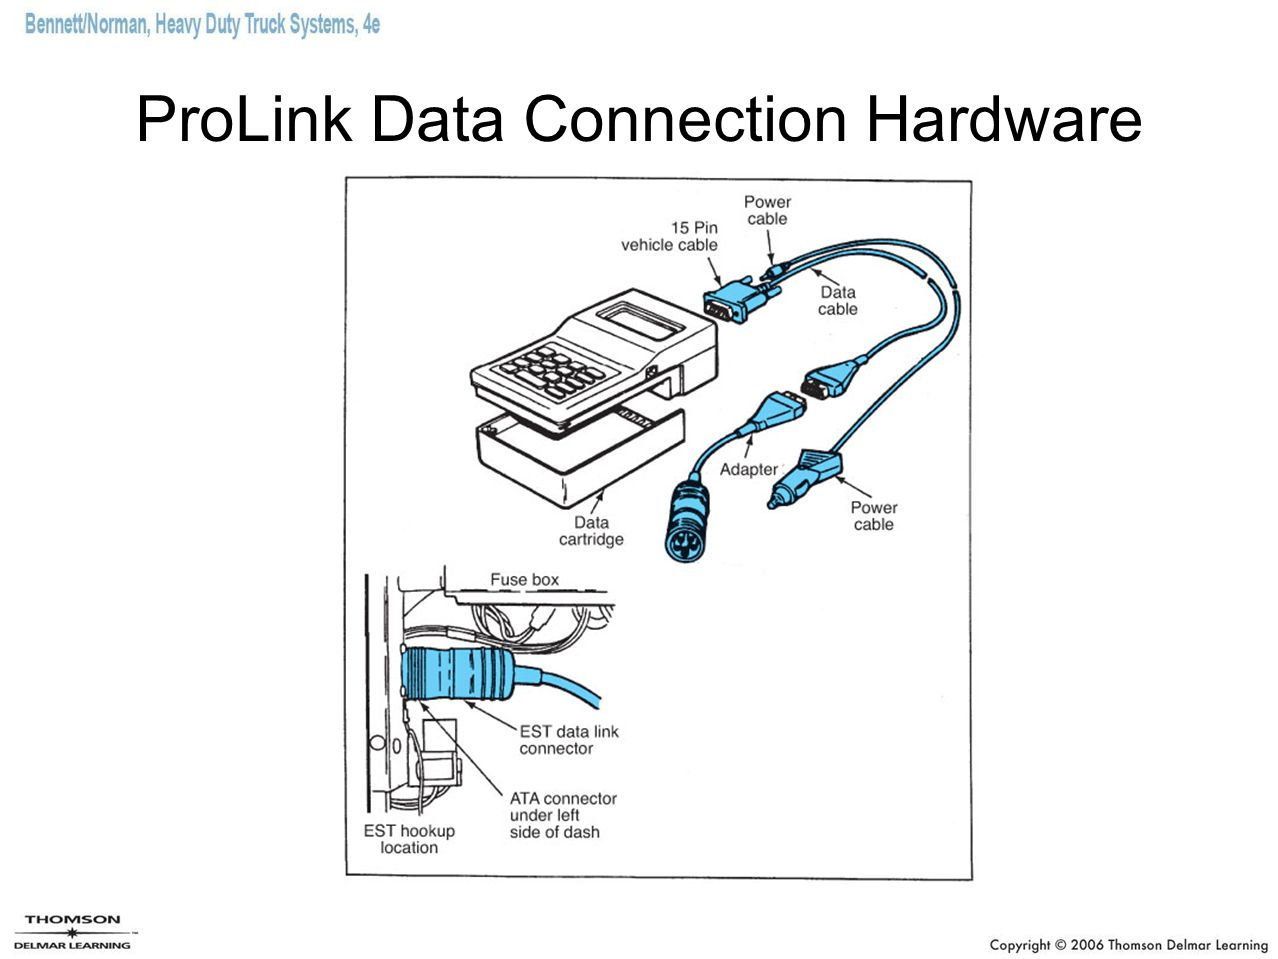 ProLink Data Connection Hardware